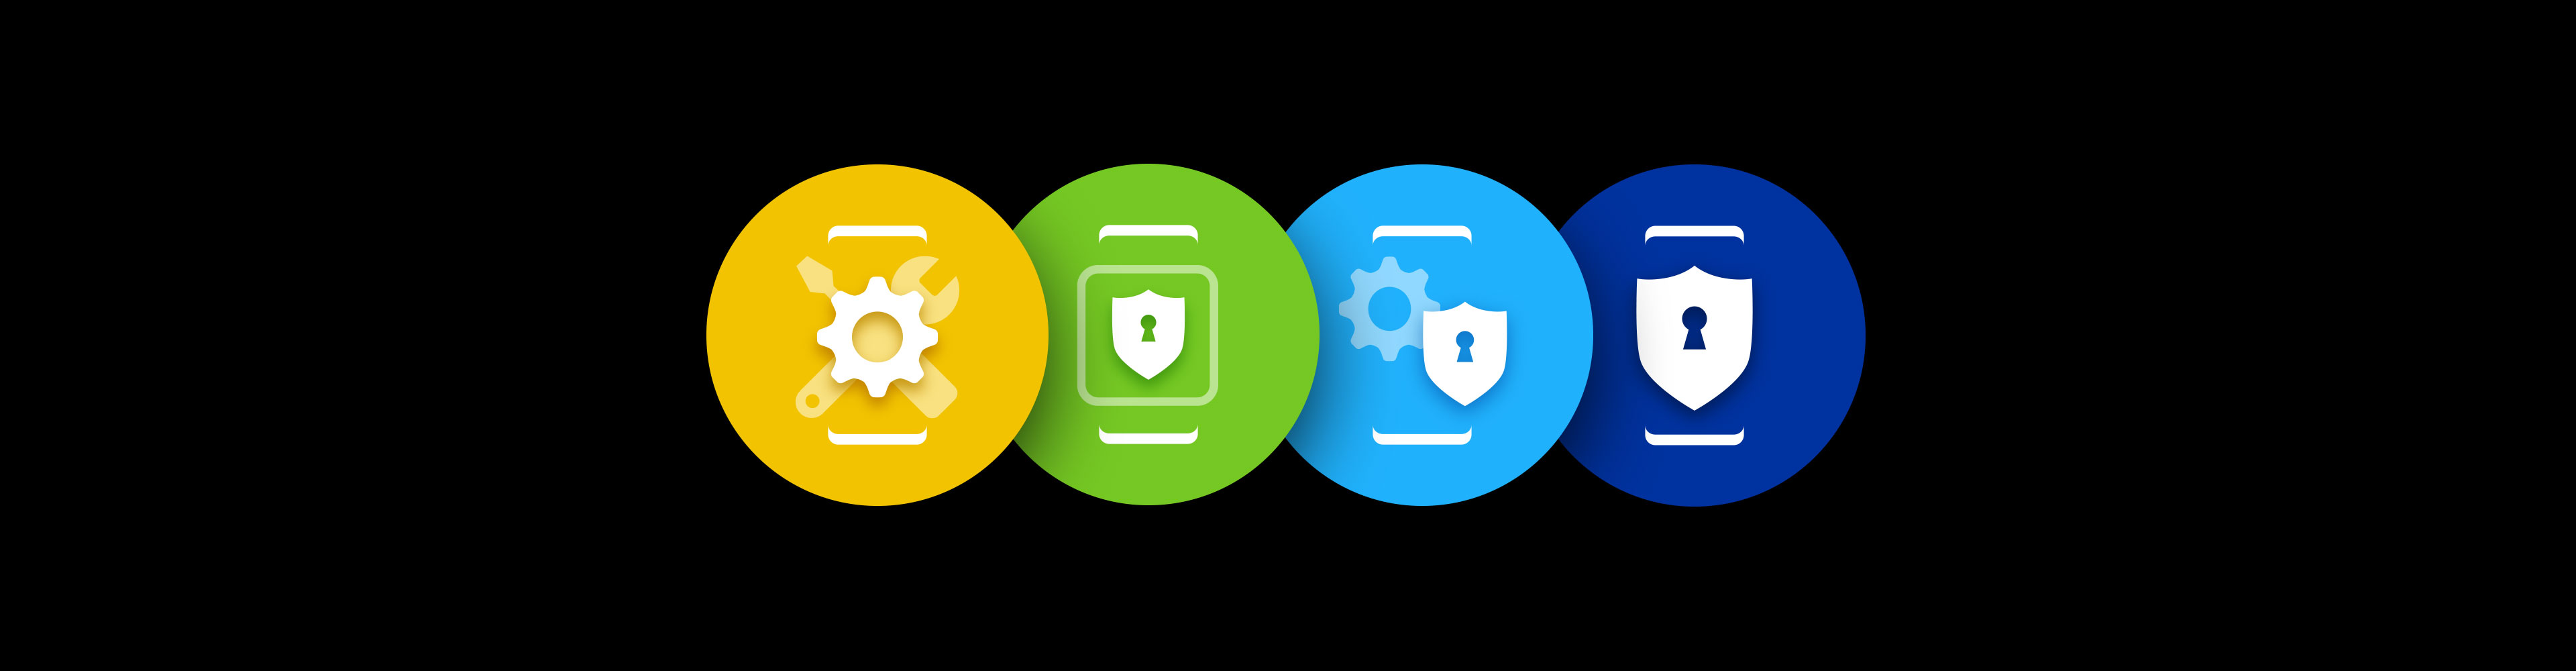 Samsung Knox | Secure mobile platform and solutions